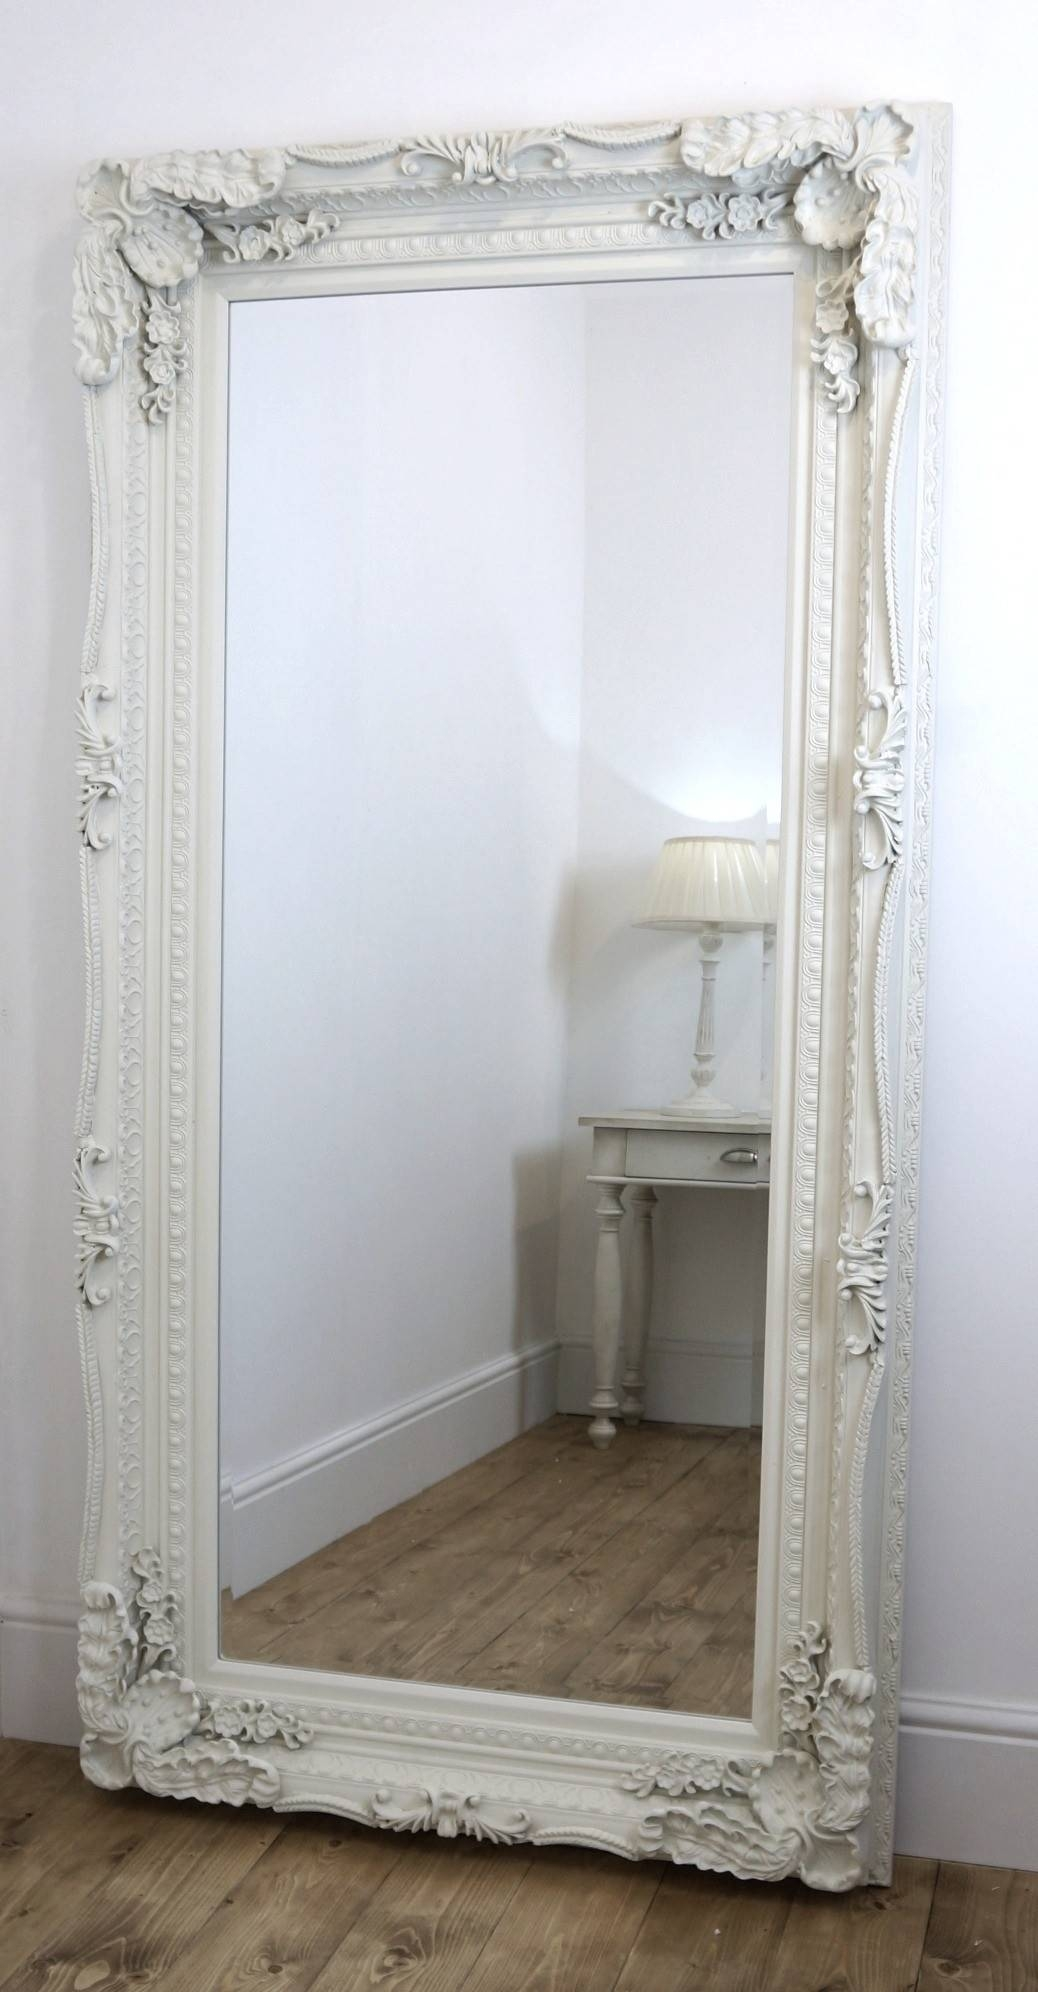 The Best Value White Swept Leaner Mirror Online intended for Ornate Leaner Mirrors (Image 15 of 15)